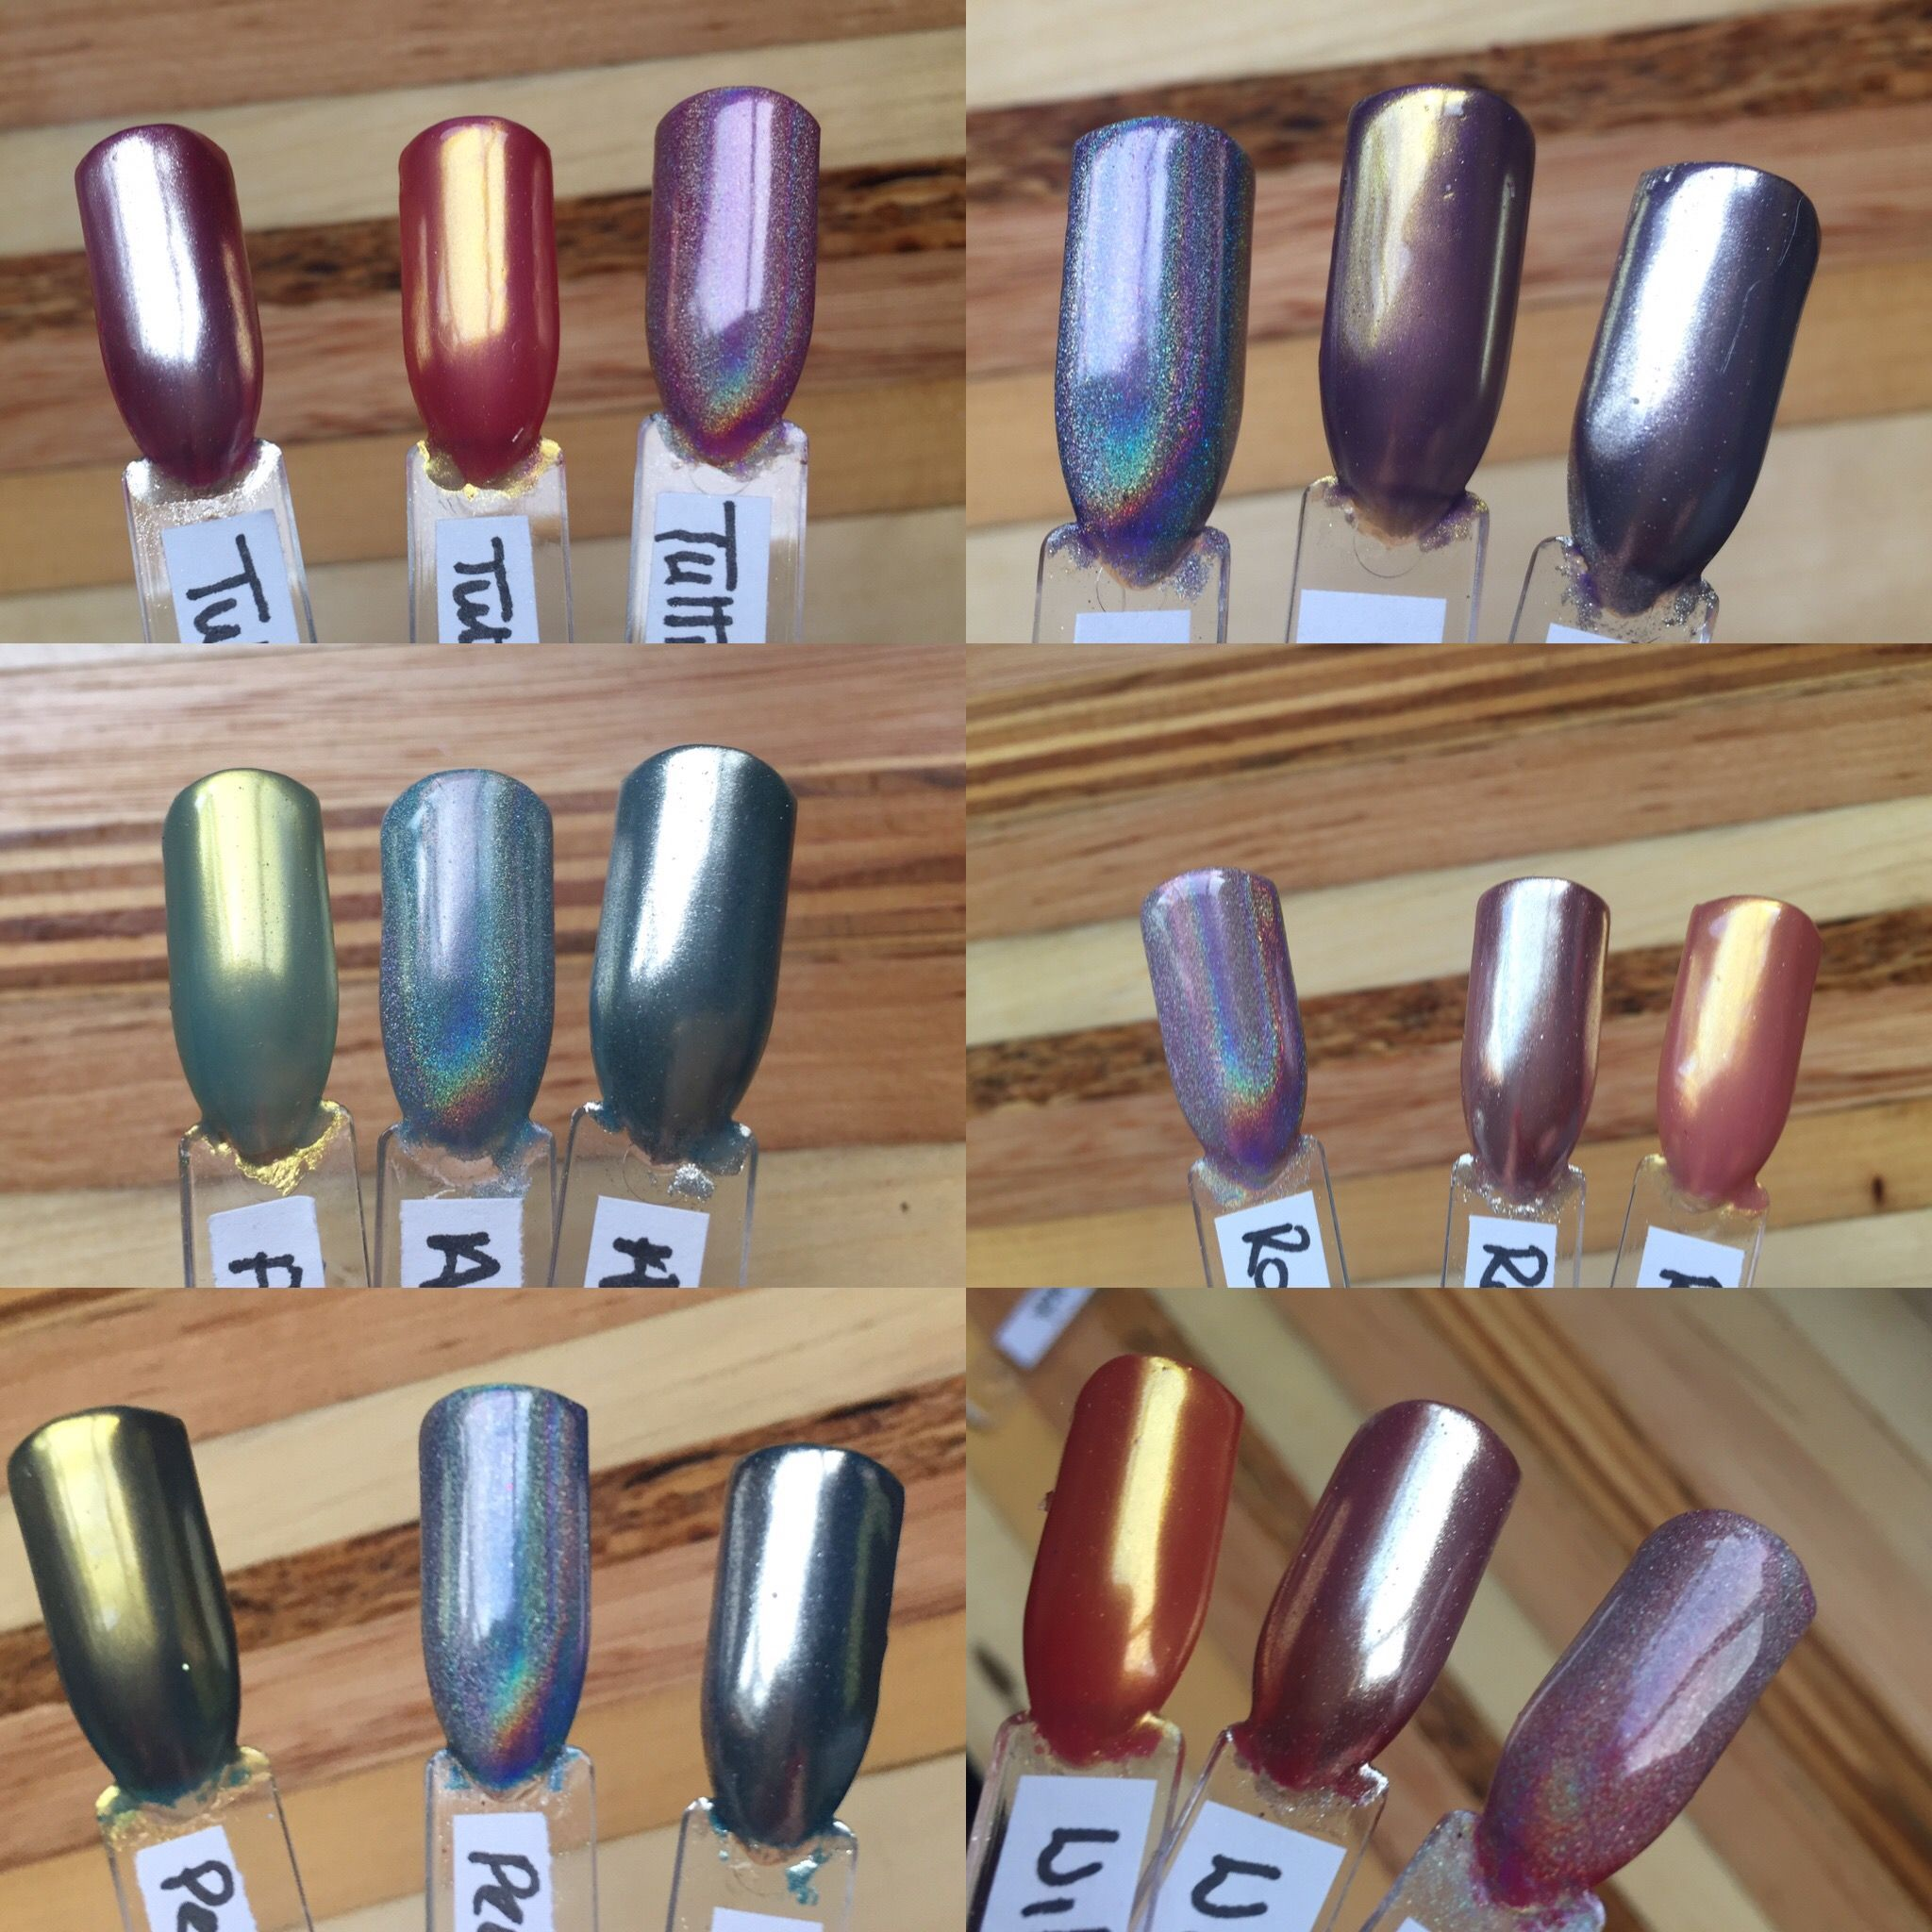 Cnd Shellac Chrome Nails At True Colour By Amanda Jones Chrome Nails Shellac Nails Shellac Nails Summer